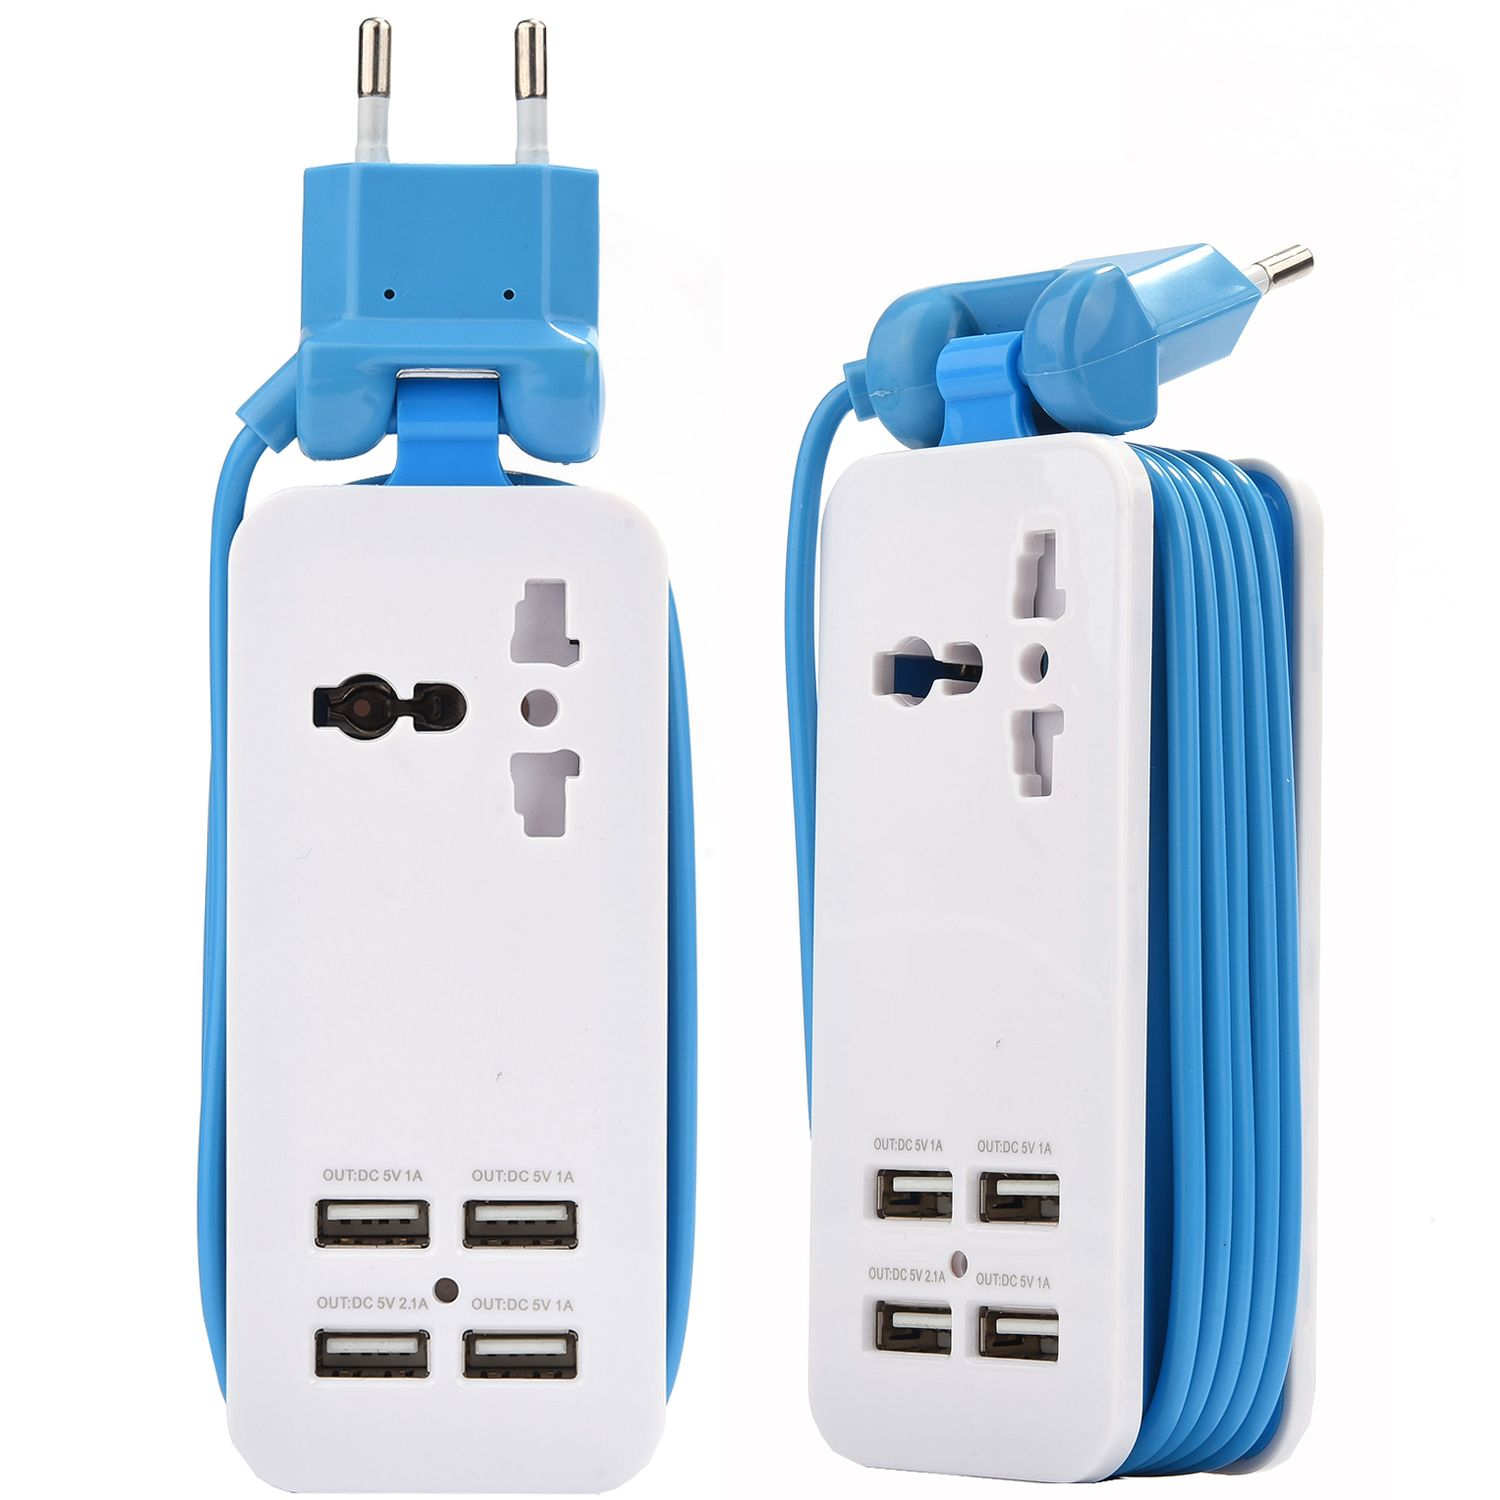 Image result for portable charging station with 4 usb ports portable charging station Portable Charging Station + 4 USB Charging Station For iPhone and Android devices 51de3380d3edfffb99c1e7556fcf53ca